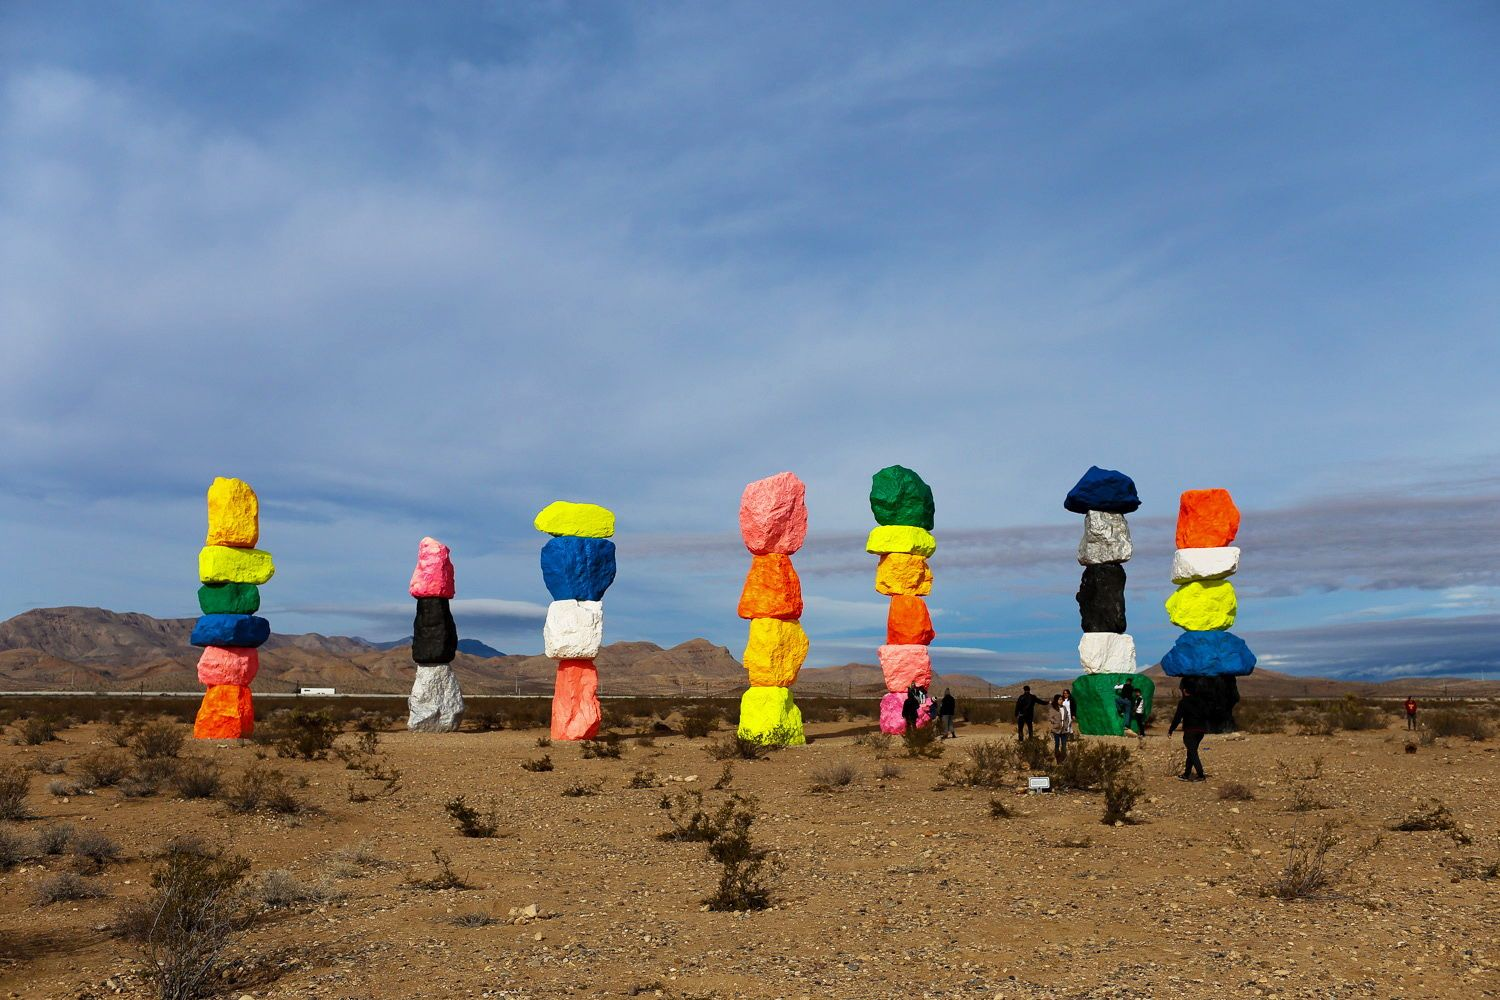 Visit The Coolest Desert Art Installation You Can Find Seven Magic Mountains Is Located In The Nevada Desert Outsi Seven Magic Mountains Desert Art Vegas Trip